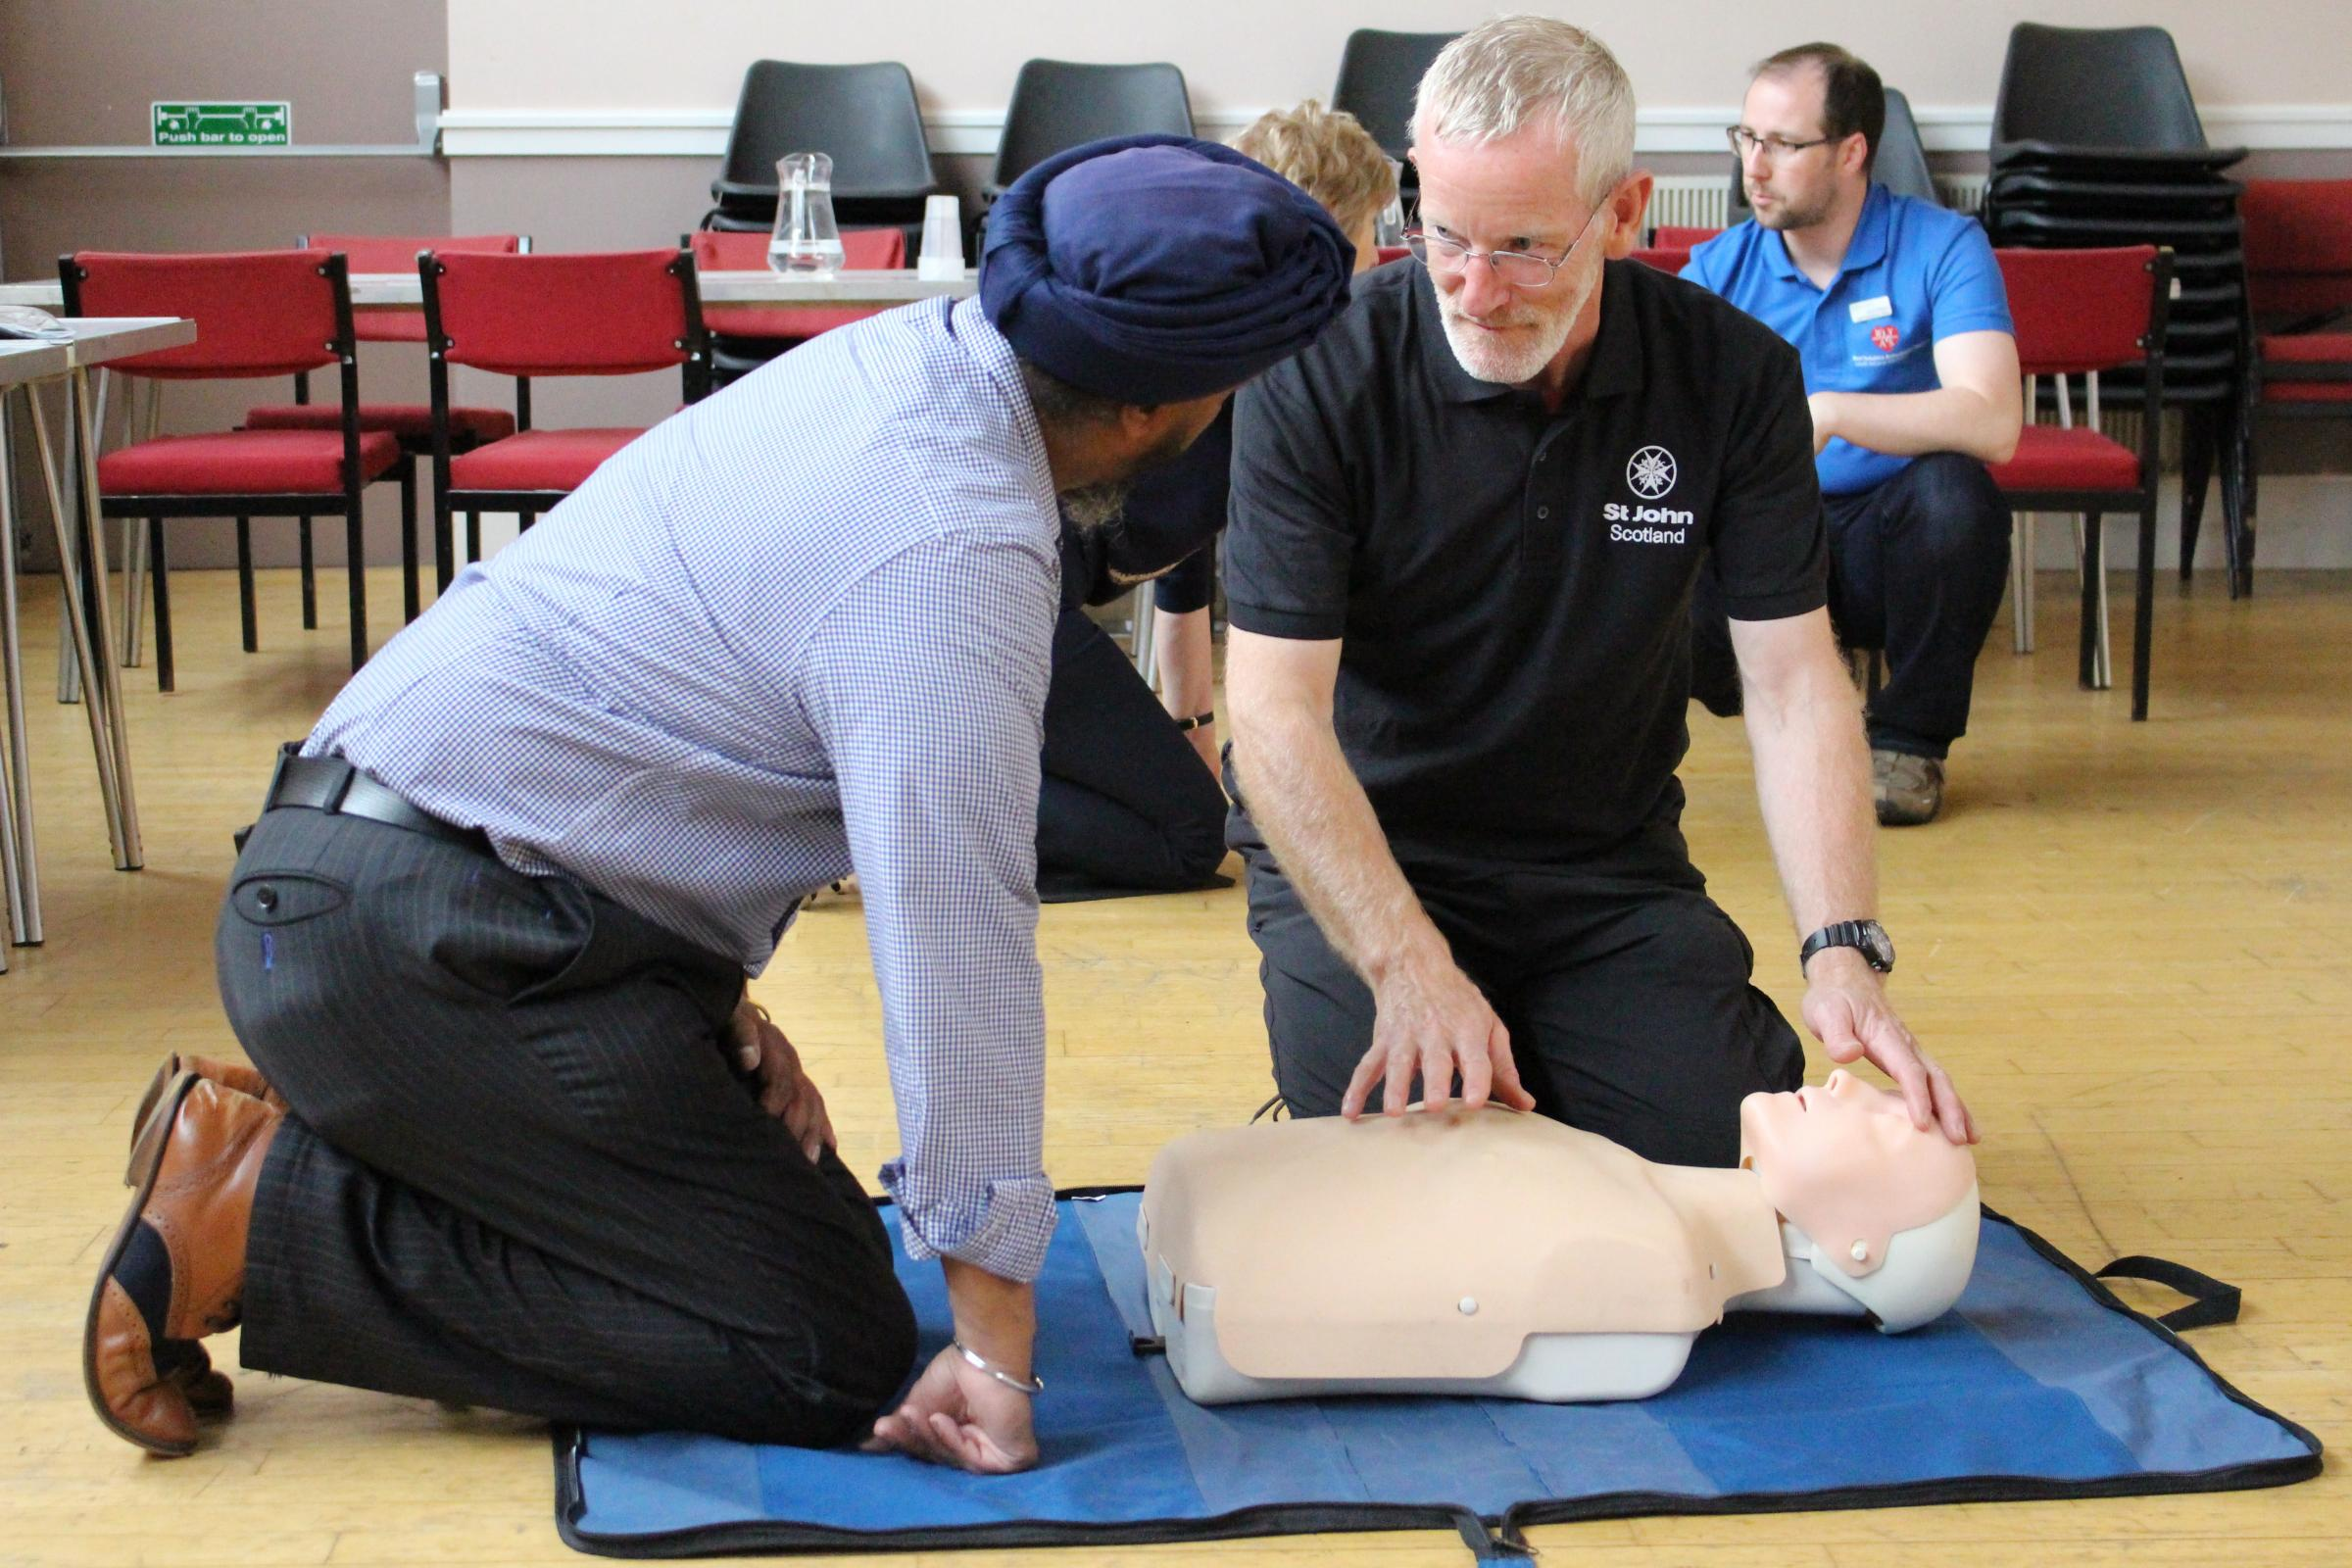 Save a Life For Scotland are asking everyone in Scotland toget CPR ready.